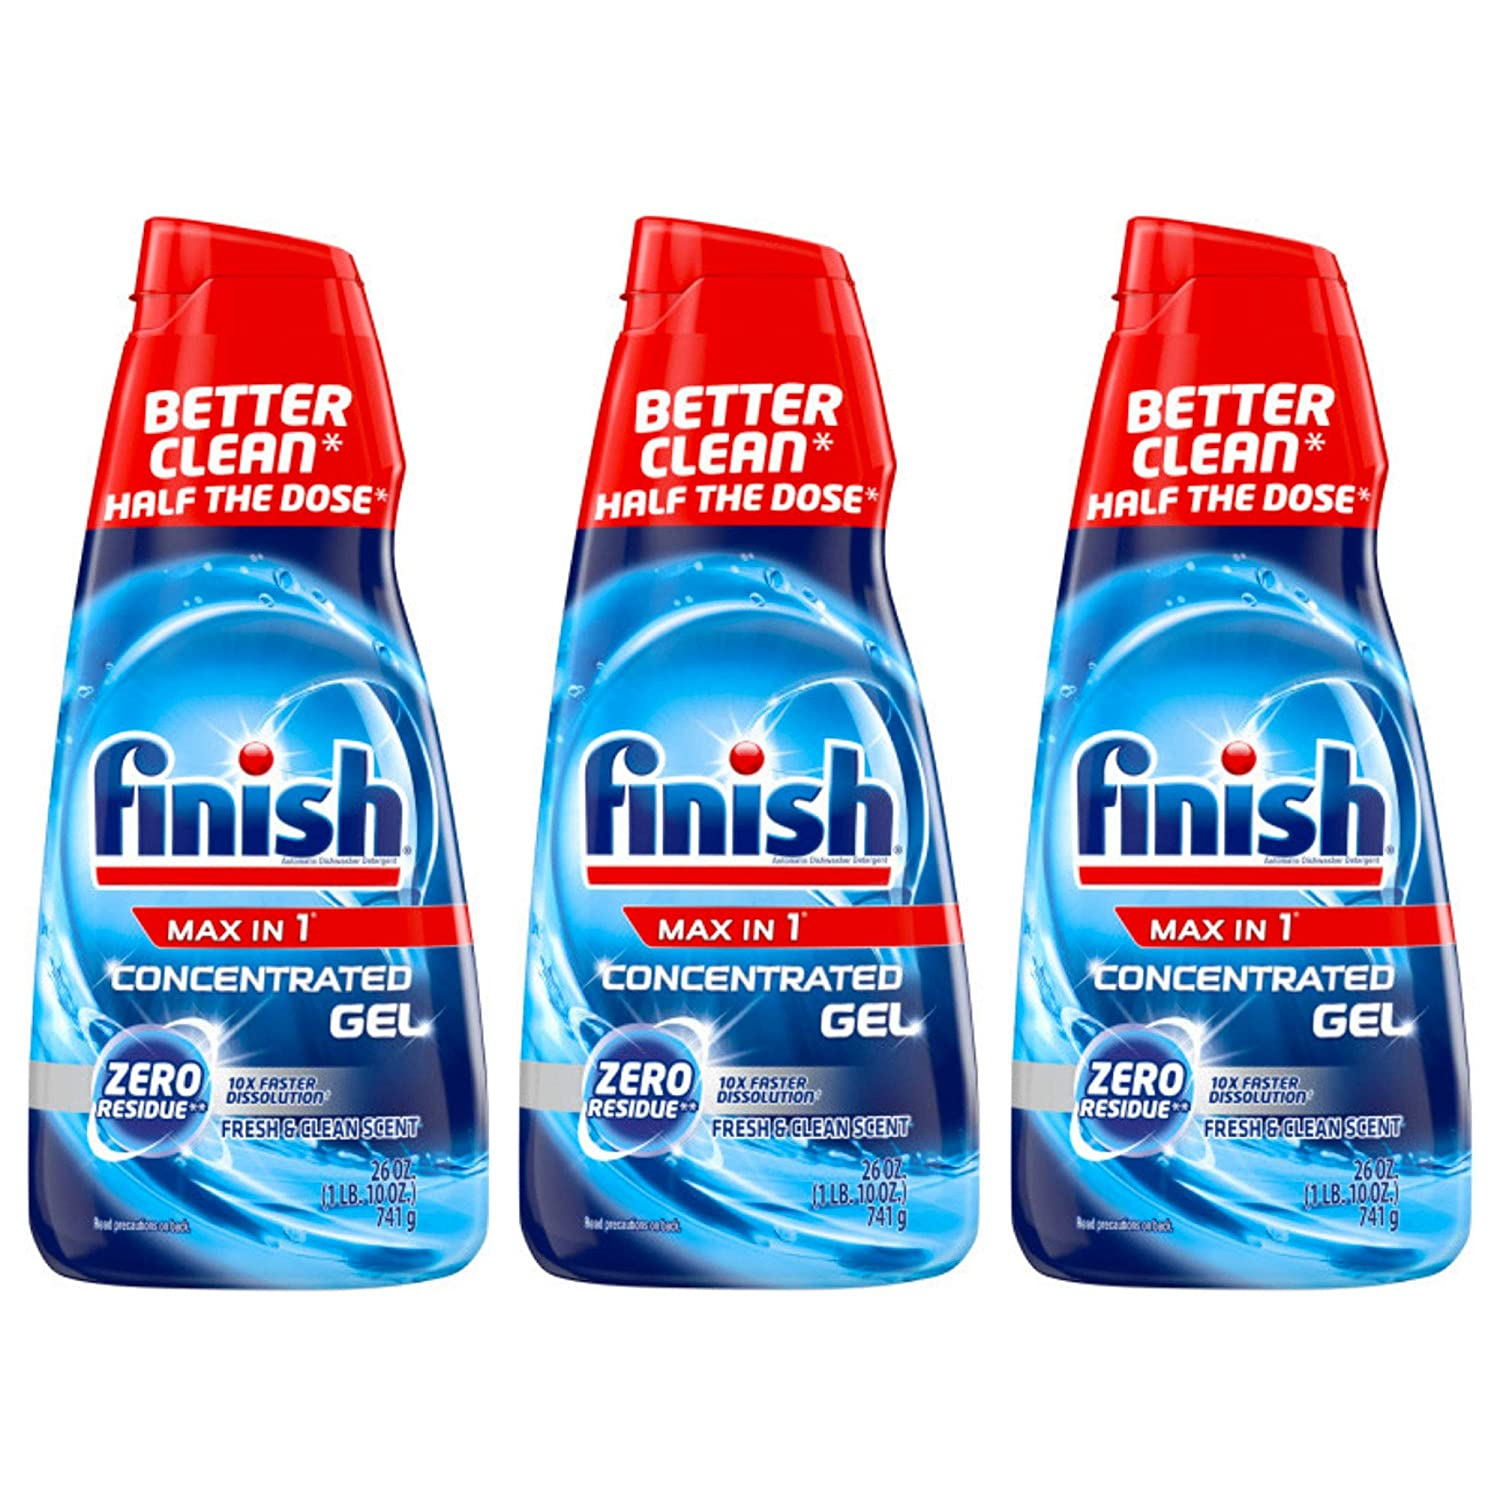 Finish Max in 1 Dishwasher Detergent Concentrated Gel, 26 oz, 32 Washes, Fresh & Clean Scent (Pack of 3)